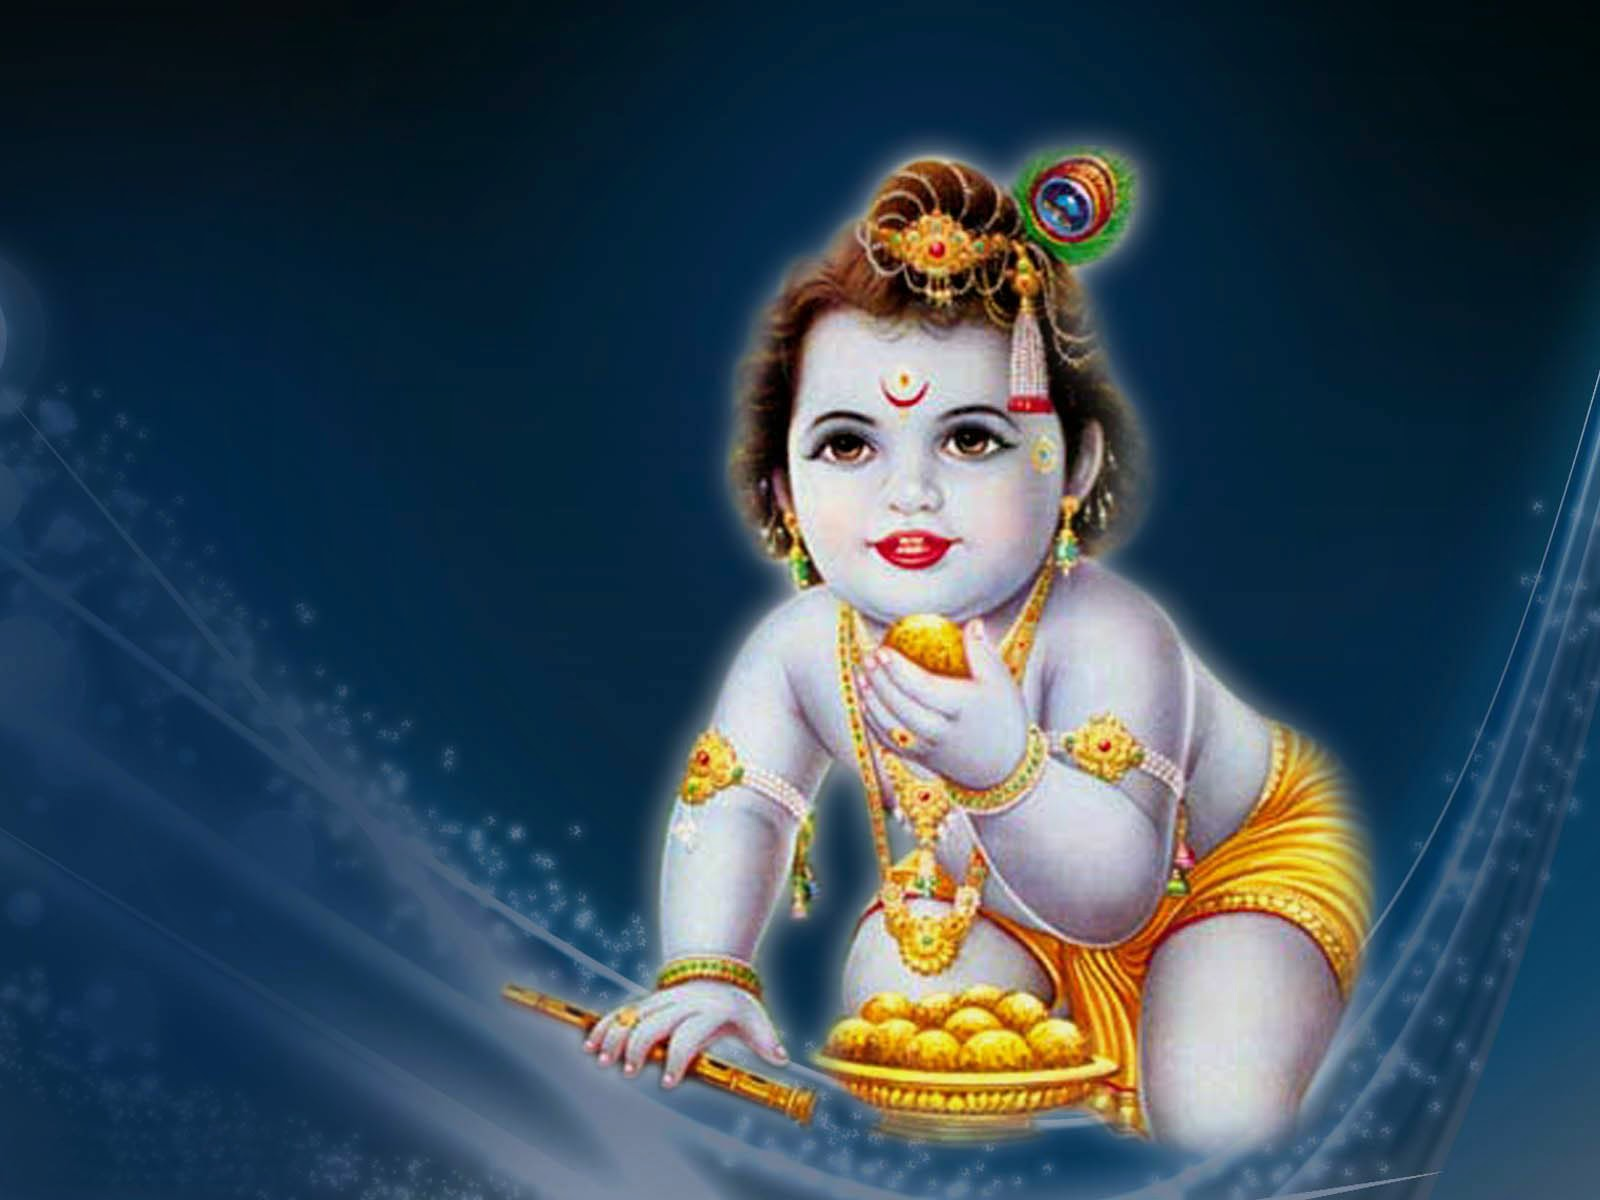 Lovable Images Lord Krishna Hd Wallpapers Free Download Cute God Of Krishna Pictures Free Loveable God Images Lord Krishna Mobile Wallpapers